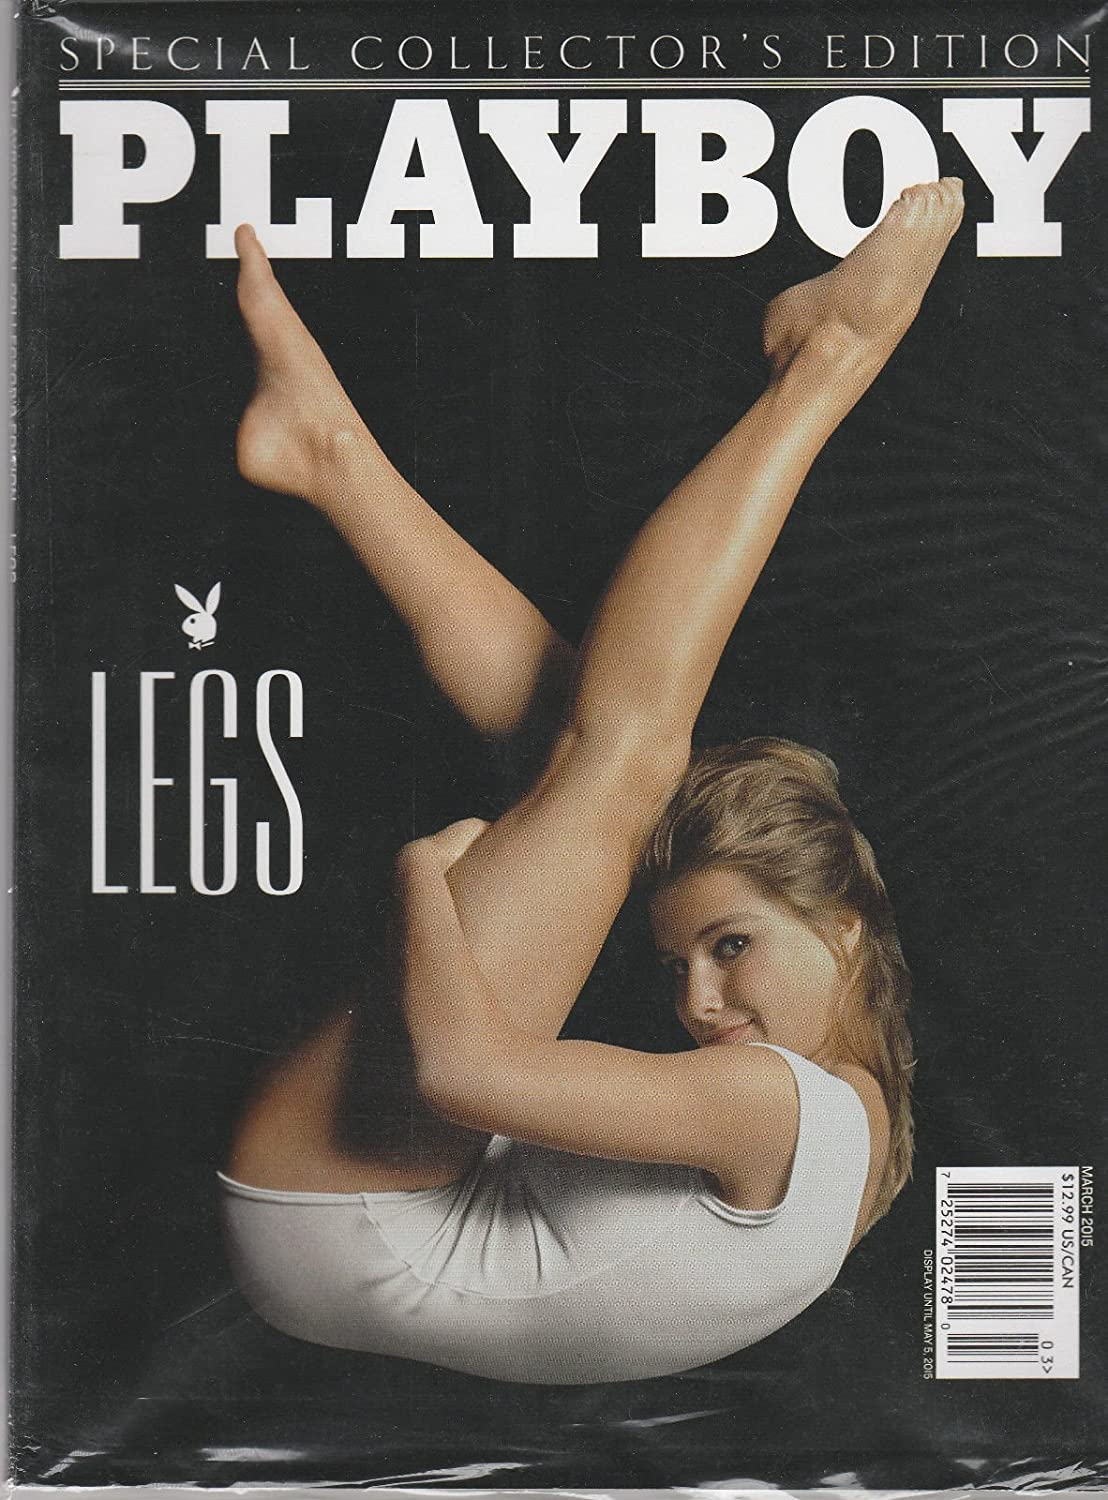 PLAYBOY MAGAZINE, SPECIAL COLLECTOR'S EDITION MARCH, 2015 LEGS s3457